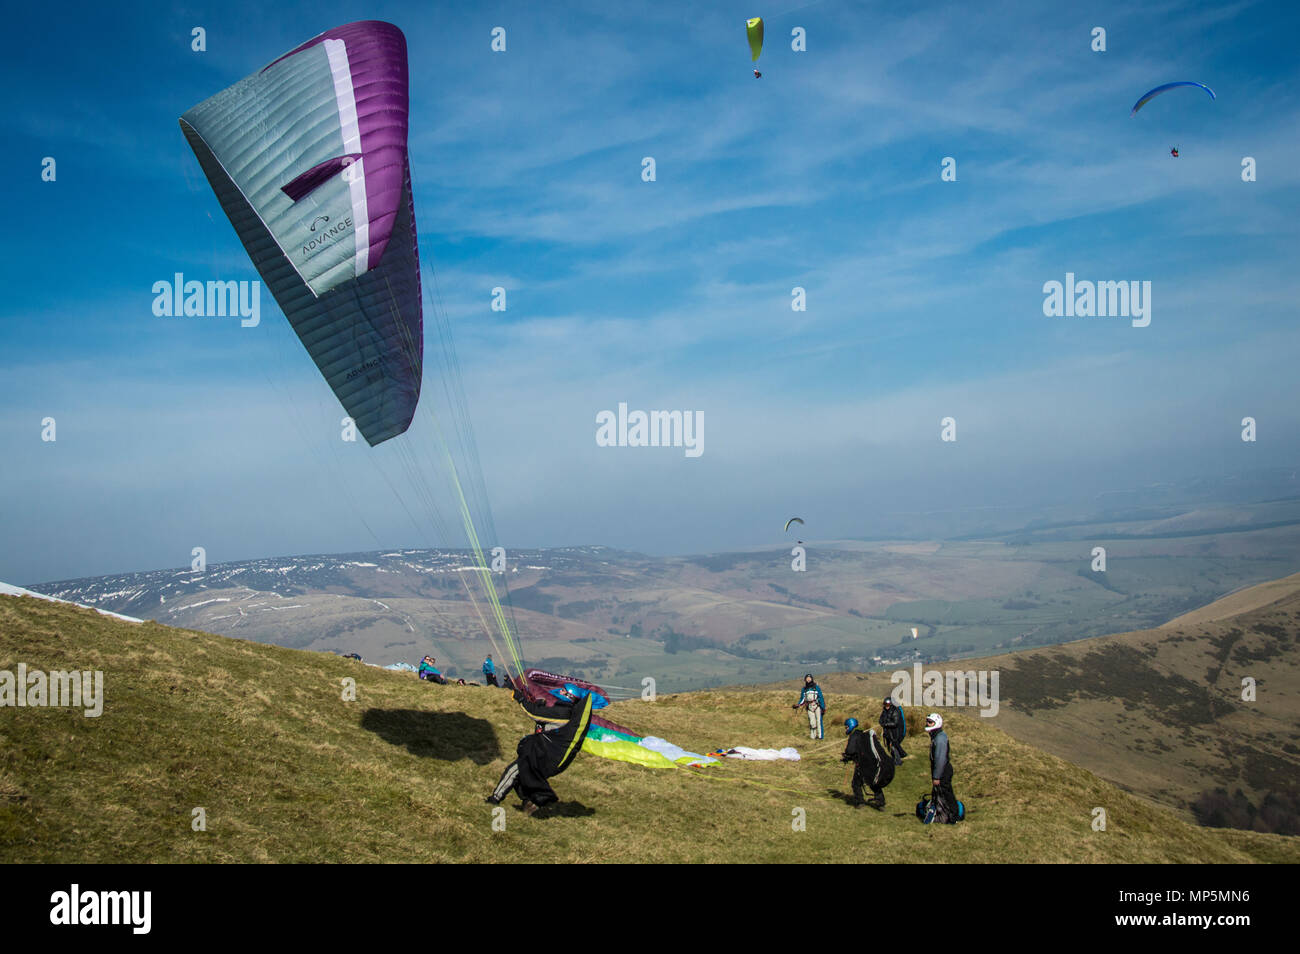 Paragliders, Peak District, UK. - Stock Image